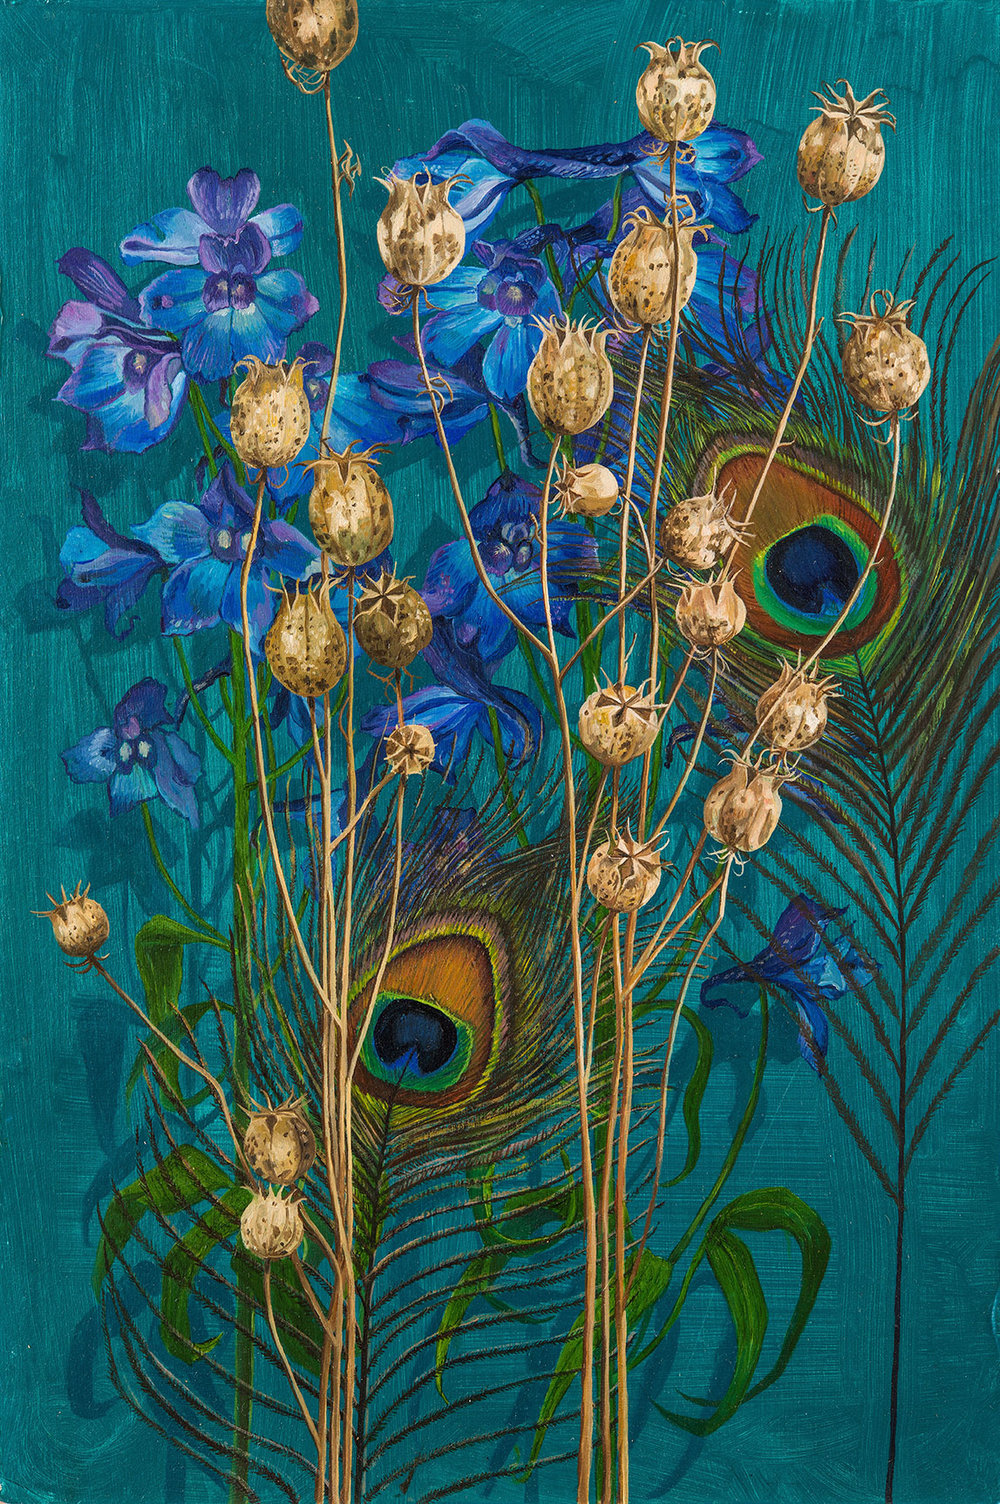 'Feathers and Delphiniums', Oil on Card, 37.5 cm x 25 cm, 2015. SOLD